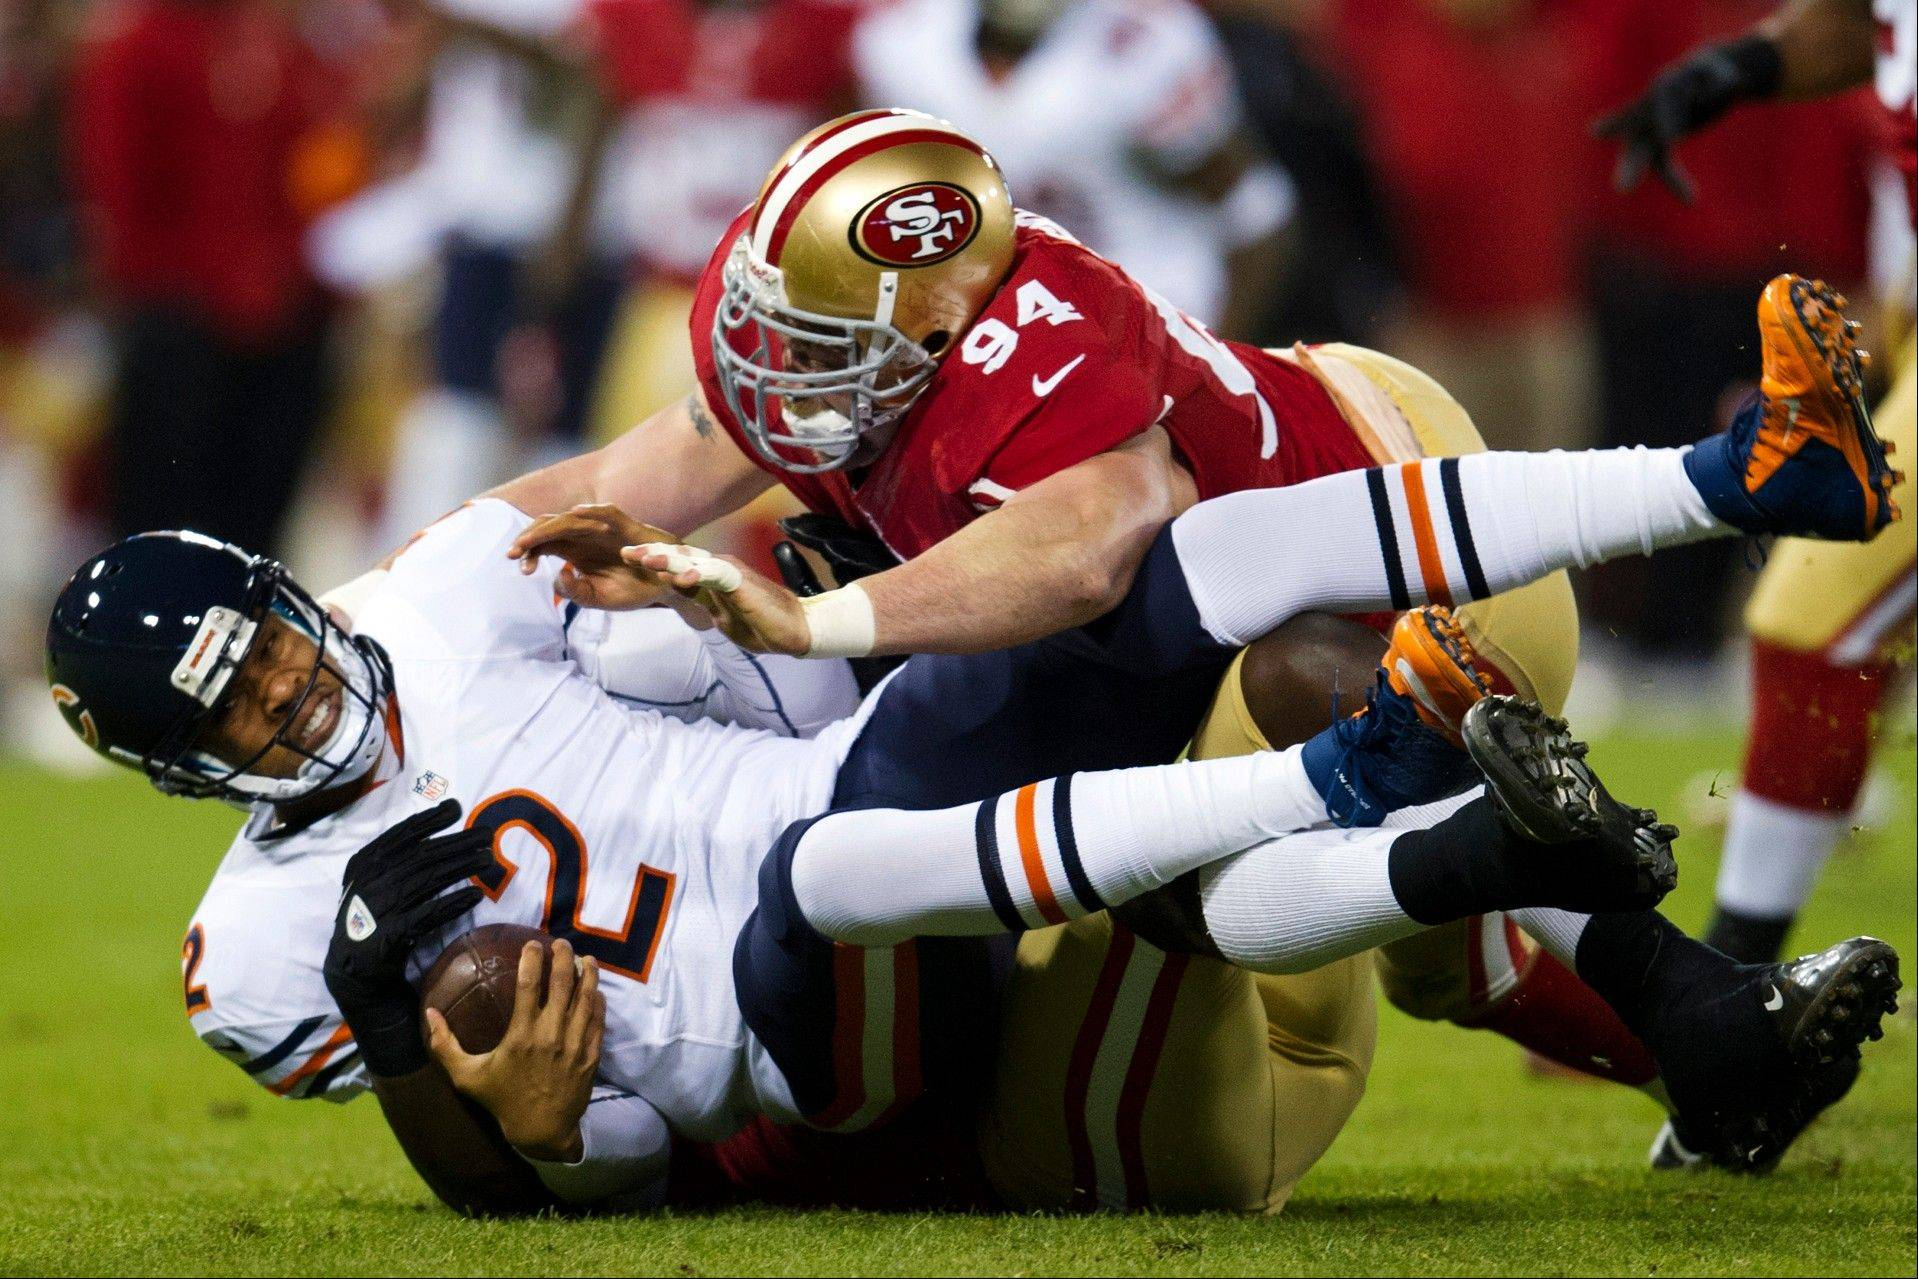 San Francisco 49ers outside linebacker Aldon Smith, obscured, and defensive end Justin Smith sack Bears quarterback Jason Campbell in Monday�s first quarter in San Francisco.